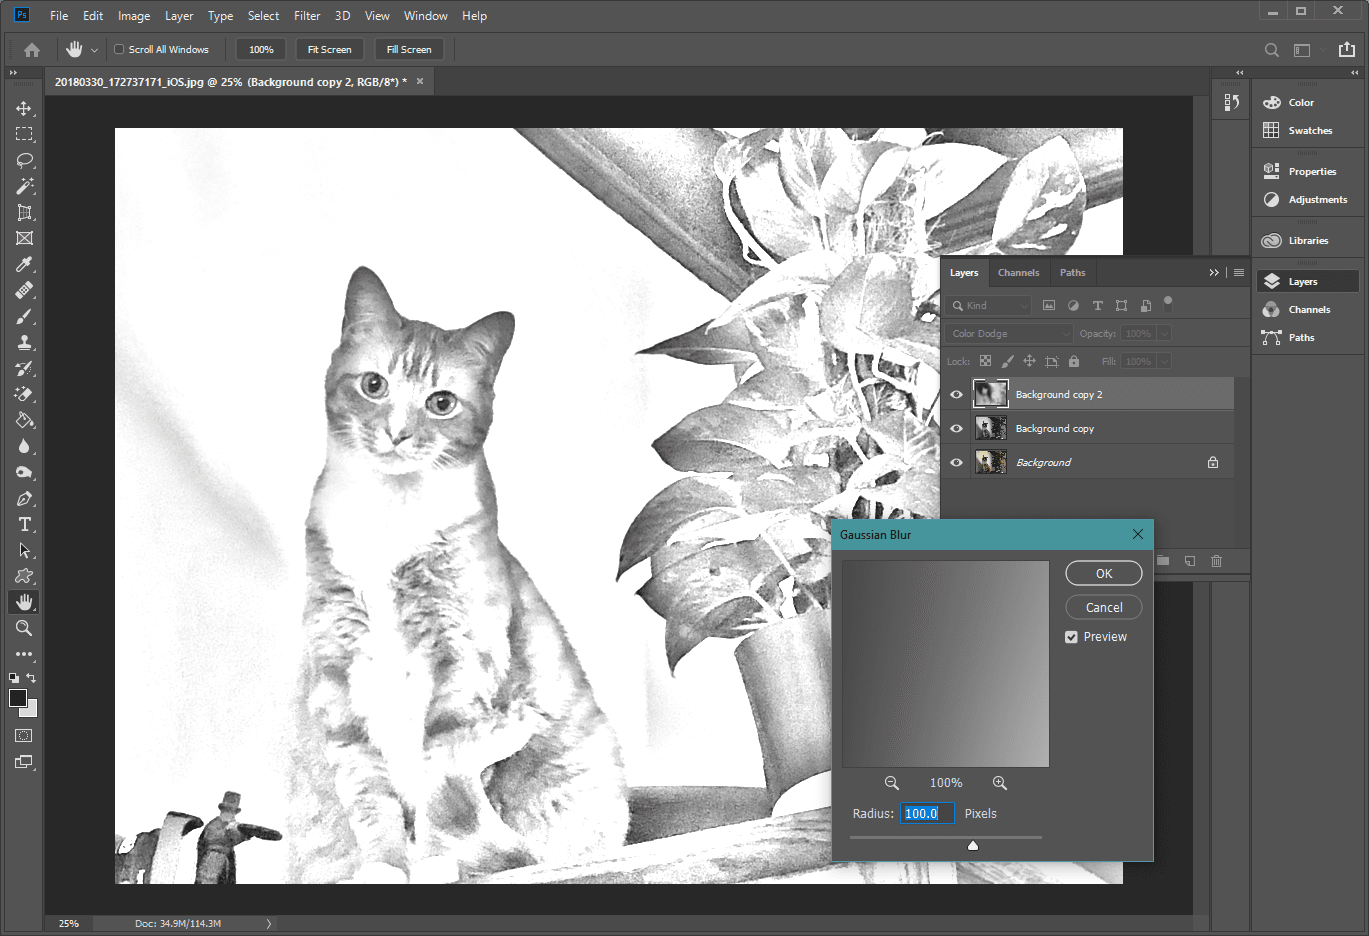 Turn a Photo into a Photoshop Pencil Sketch